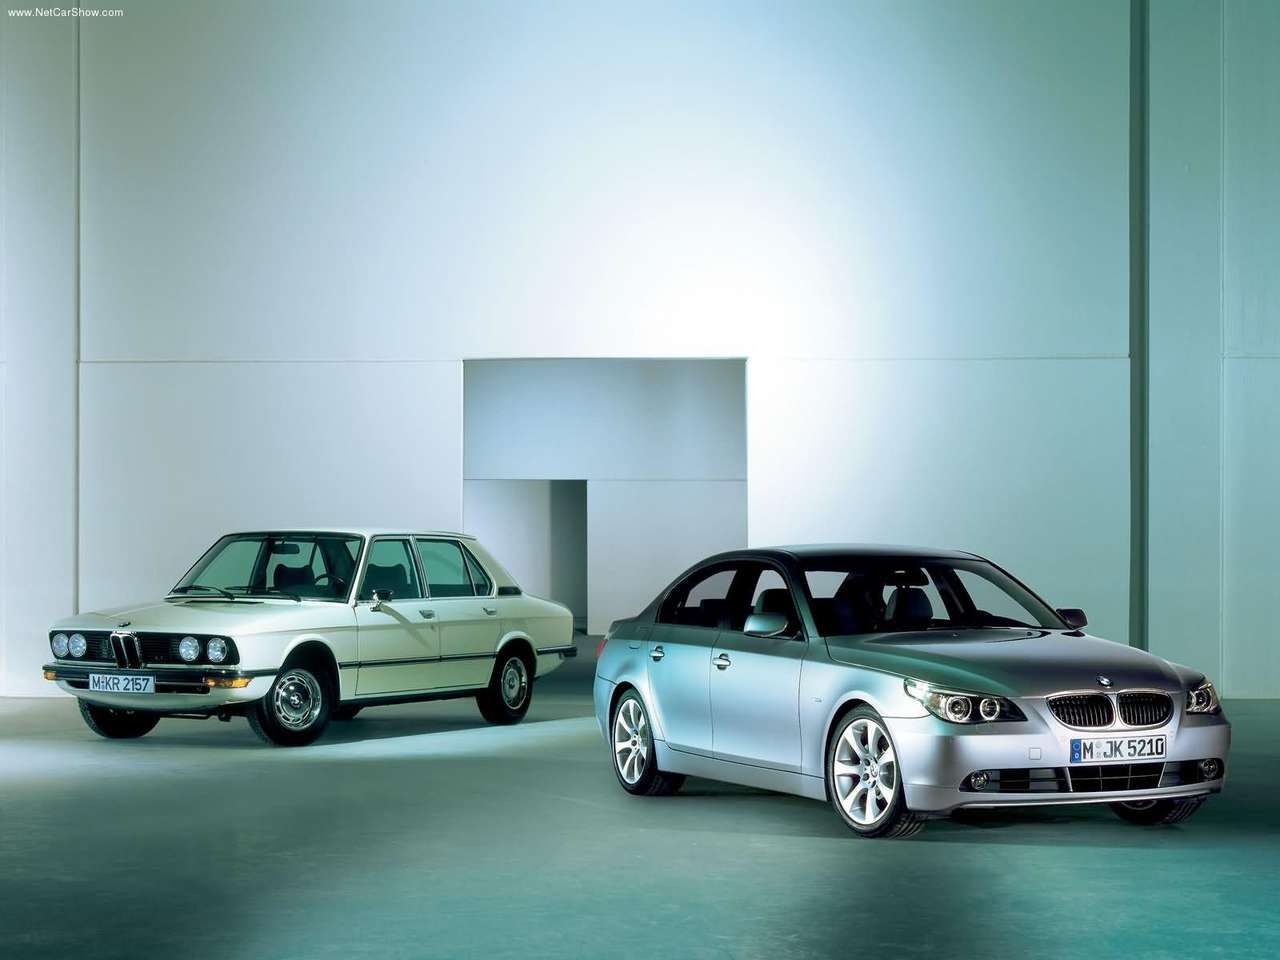 ... /28Wu8j3VOqs/s1600/BMW-5_Series_2004_1280x960_wallpaper_02.jpg